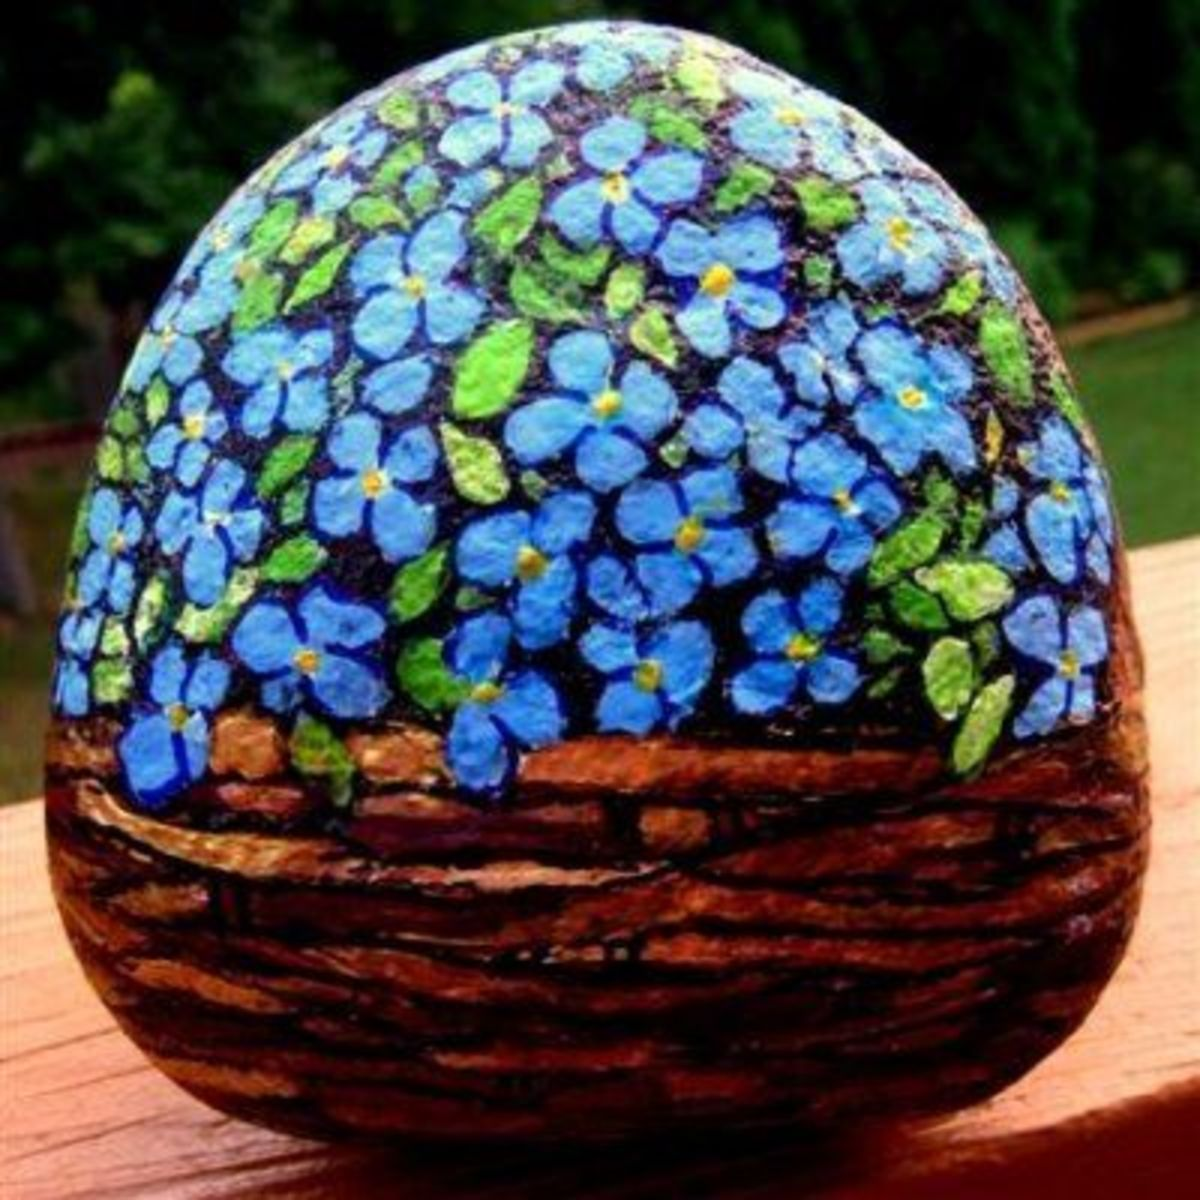 This is my forget me not flower basket rock that I painted and sold years ago.  Forget me nots painted on a rock make a wonderful gift of flowers that live forever!